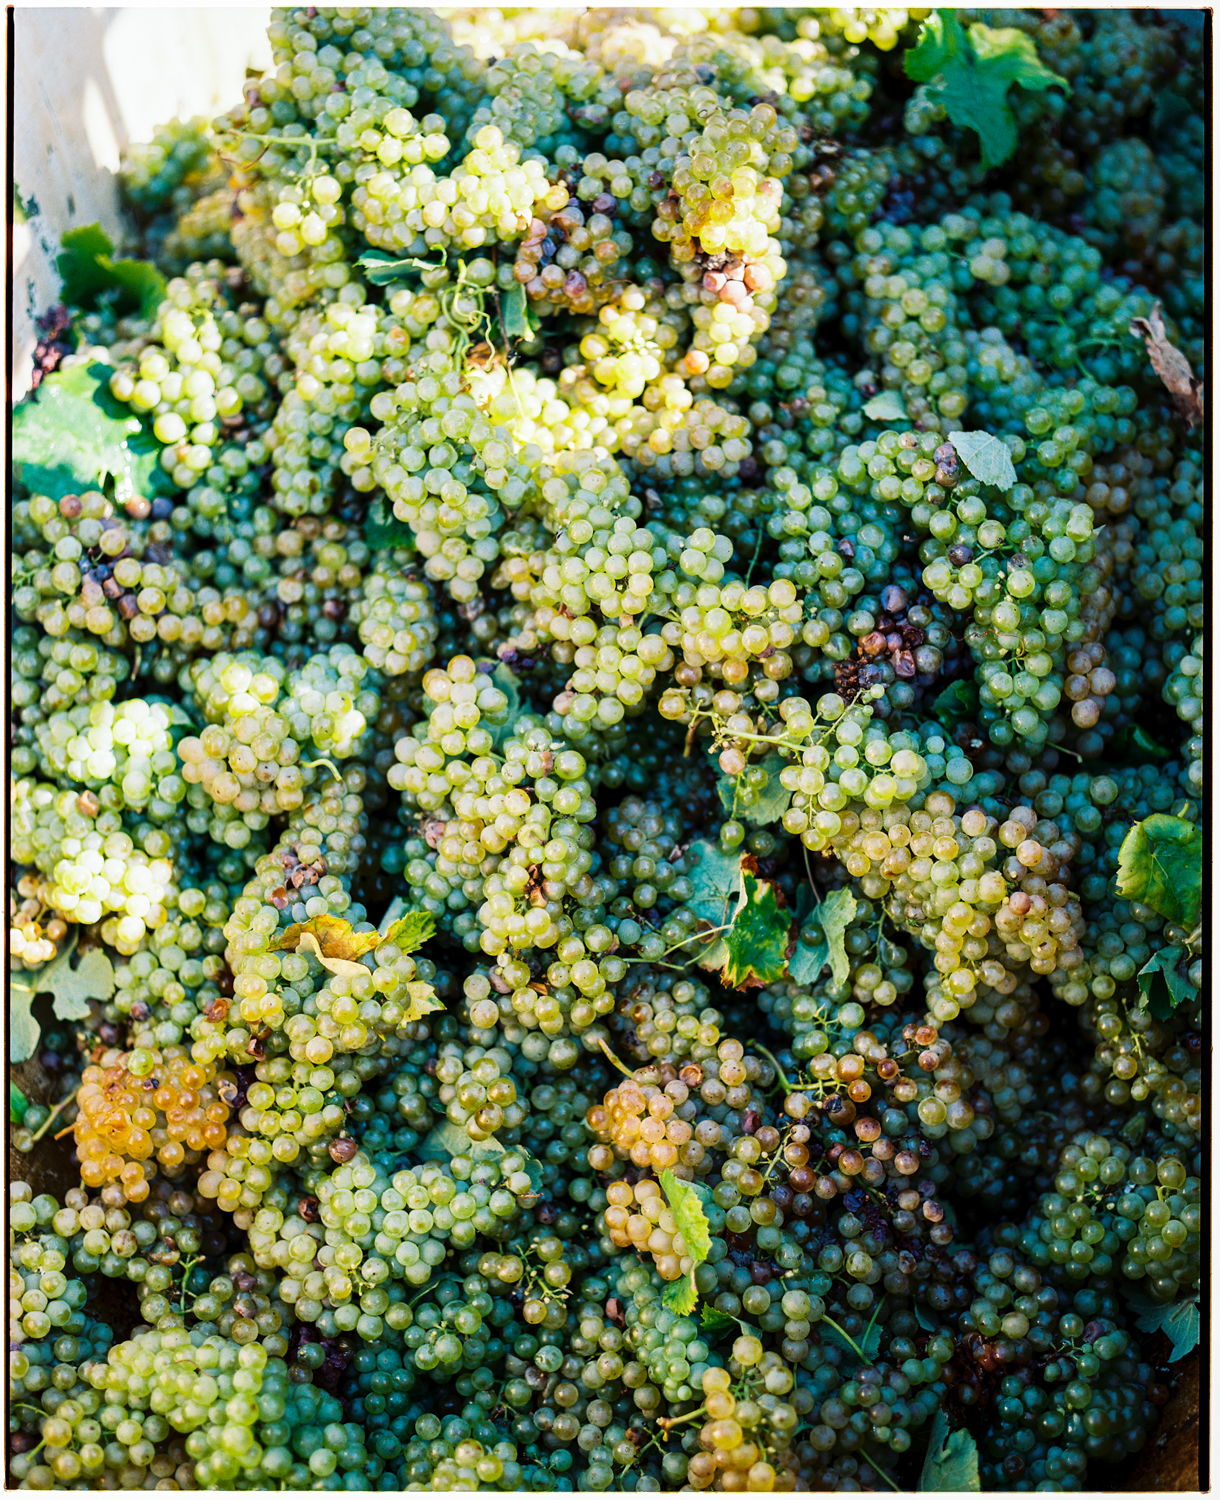 Harvested Grapes Lugo, Italy  2017